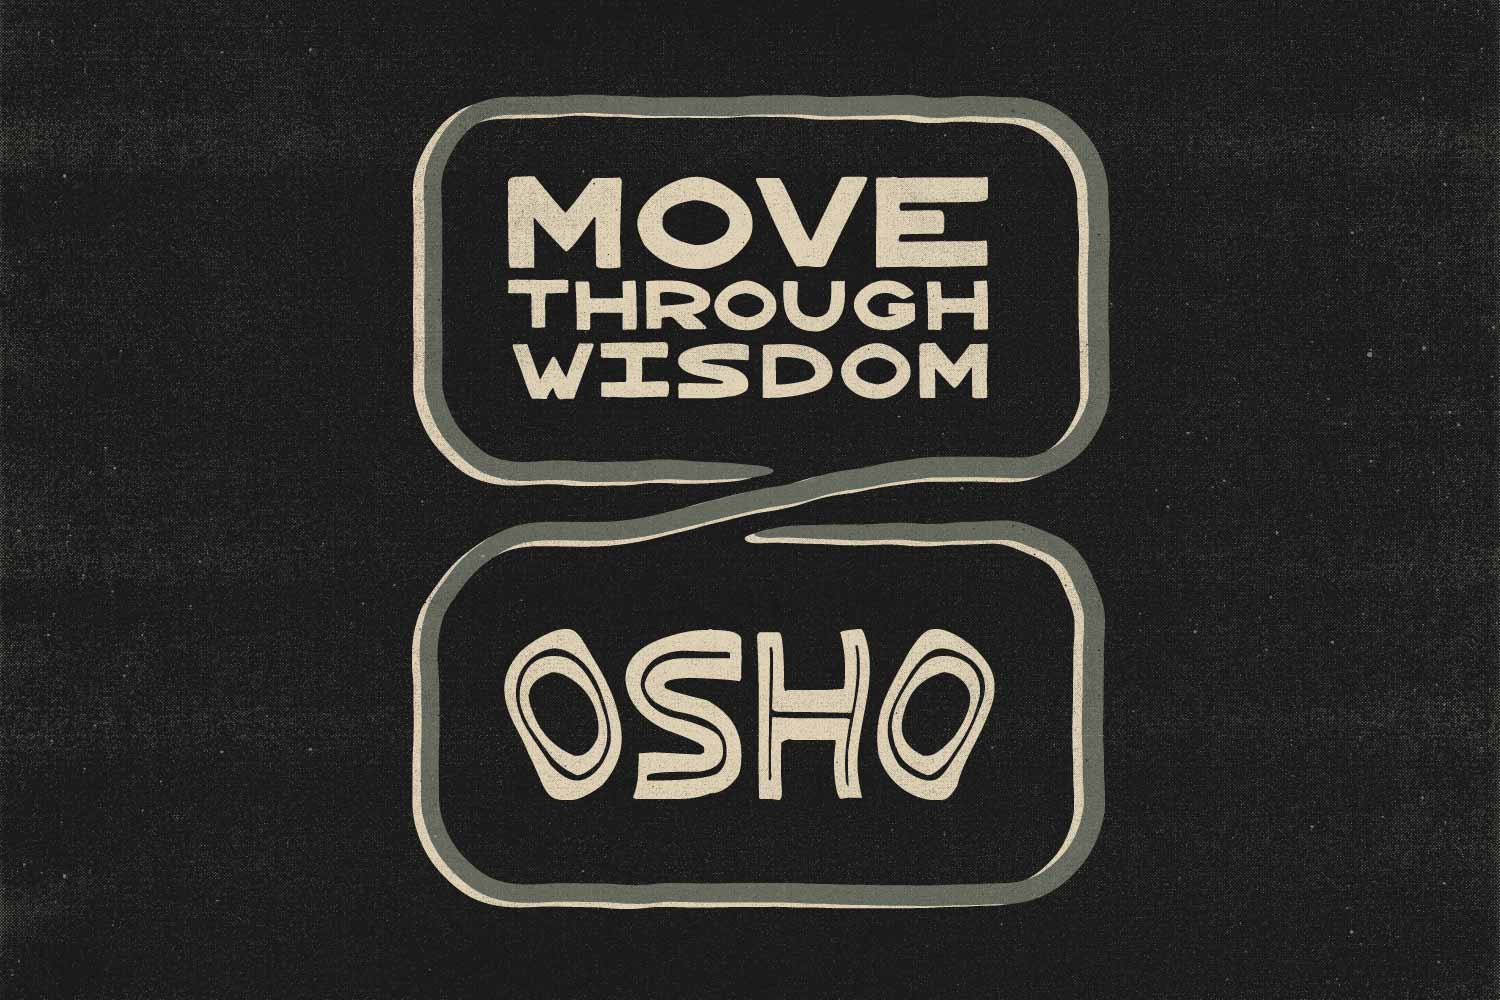 So We Flow... Move Through wisdom with Osho philosophy graphic